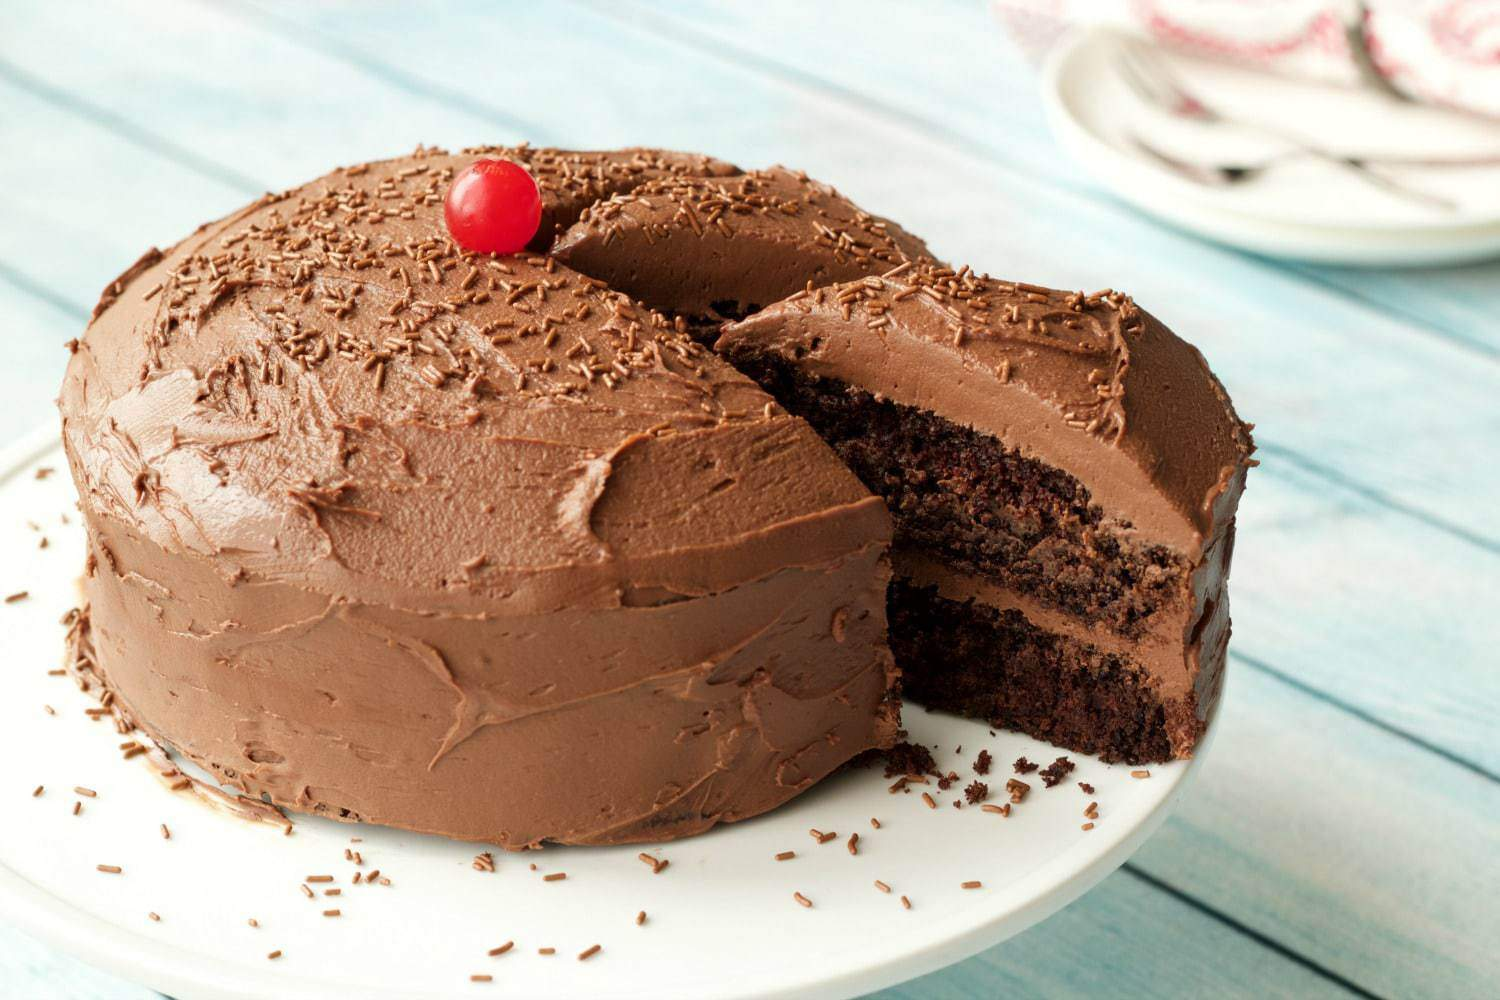 Easy Chocolate Ganache Cake